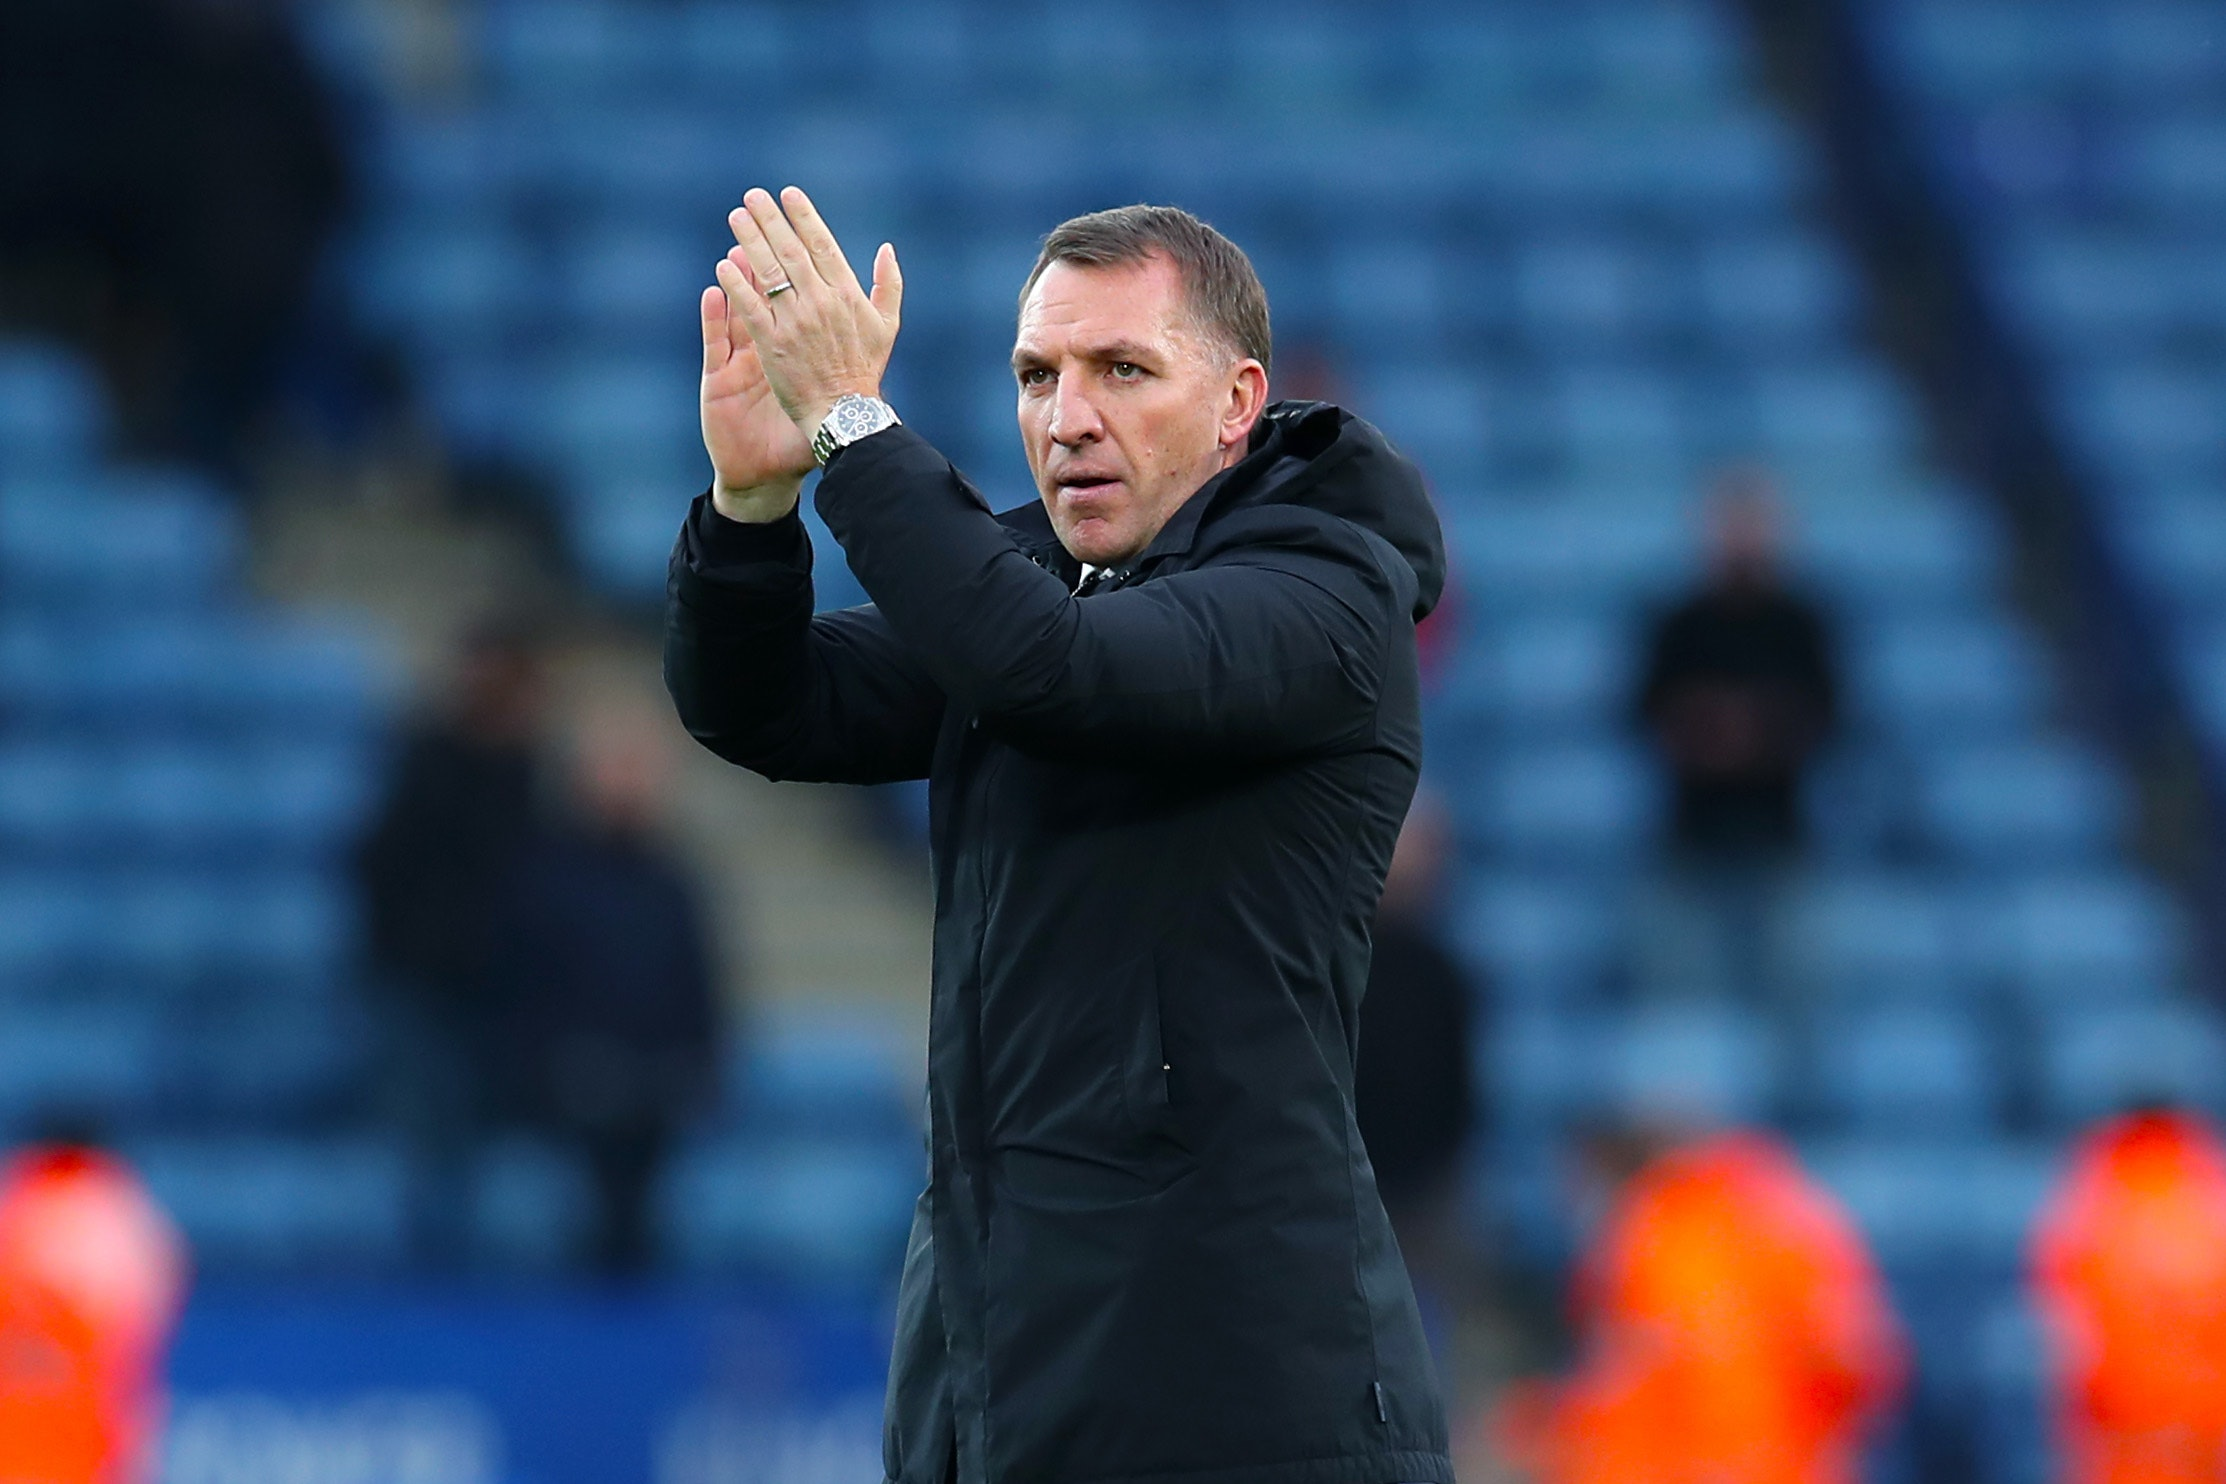 Leicester manager Brendan Rodgers will help in the search for a new head of recruitment